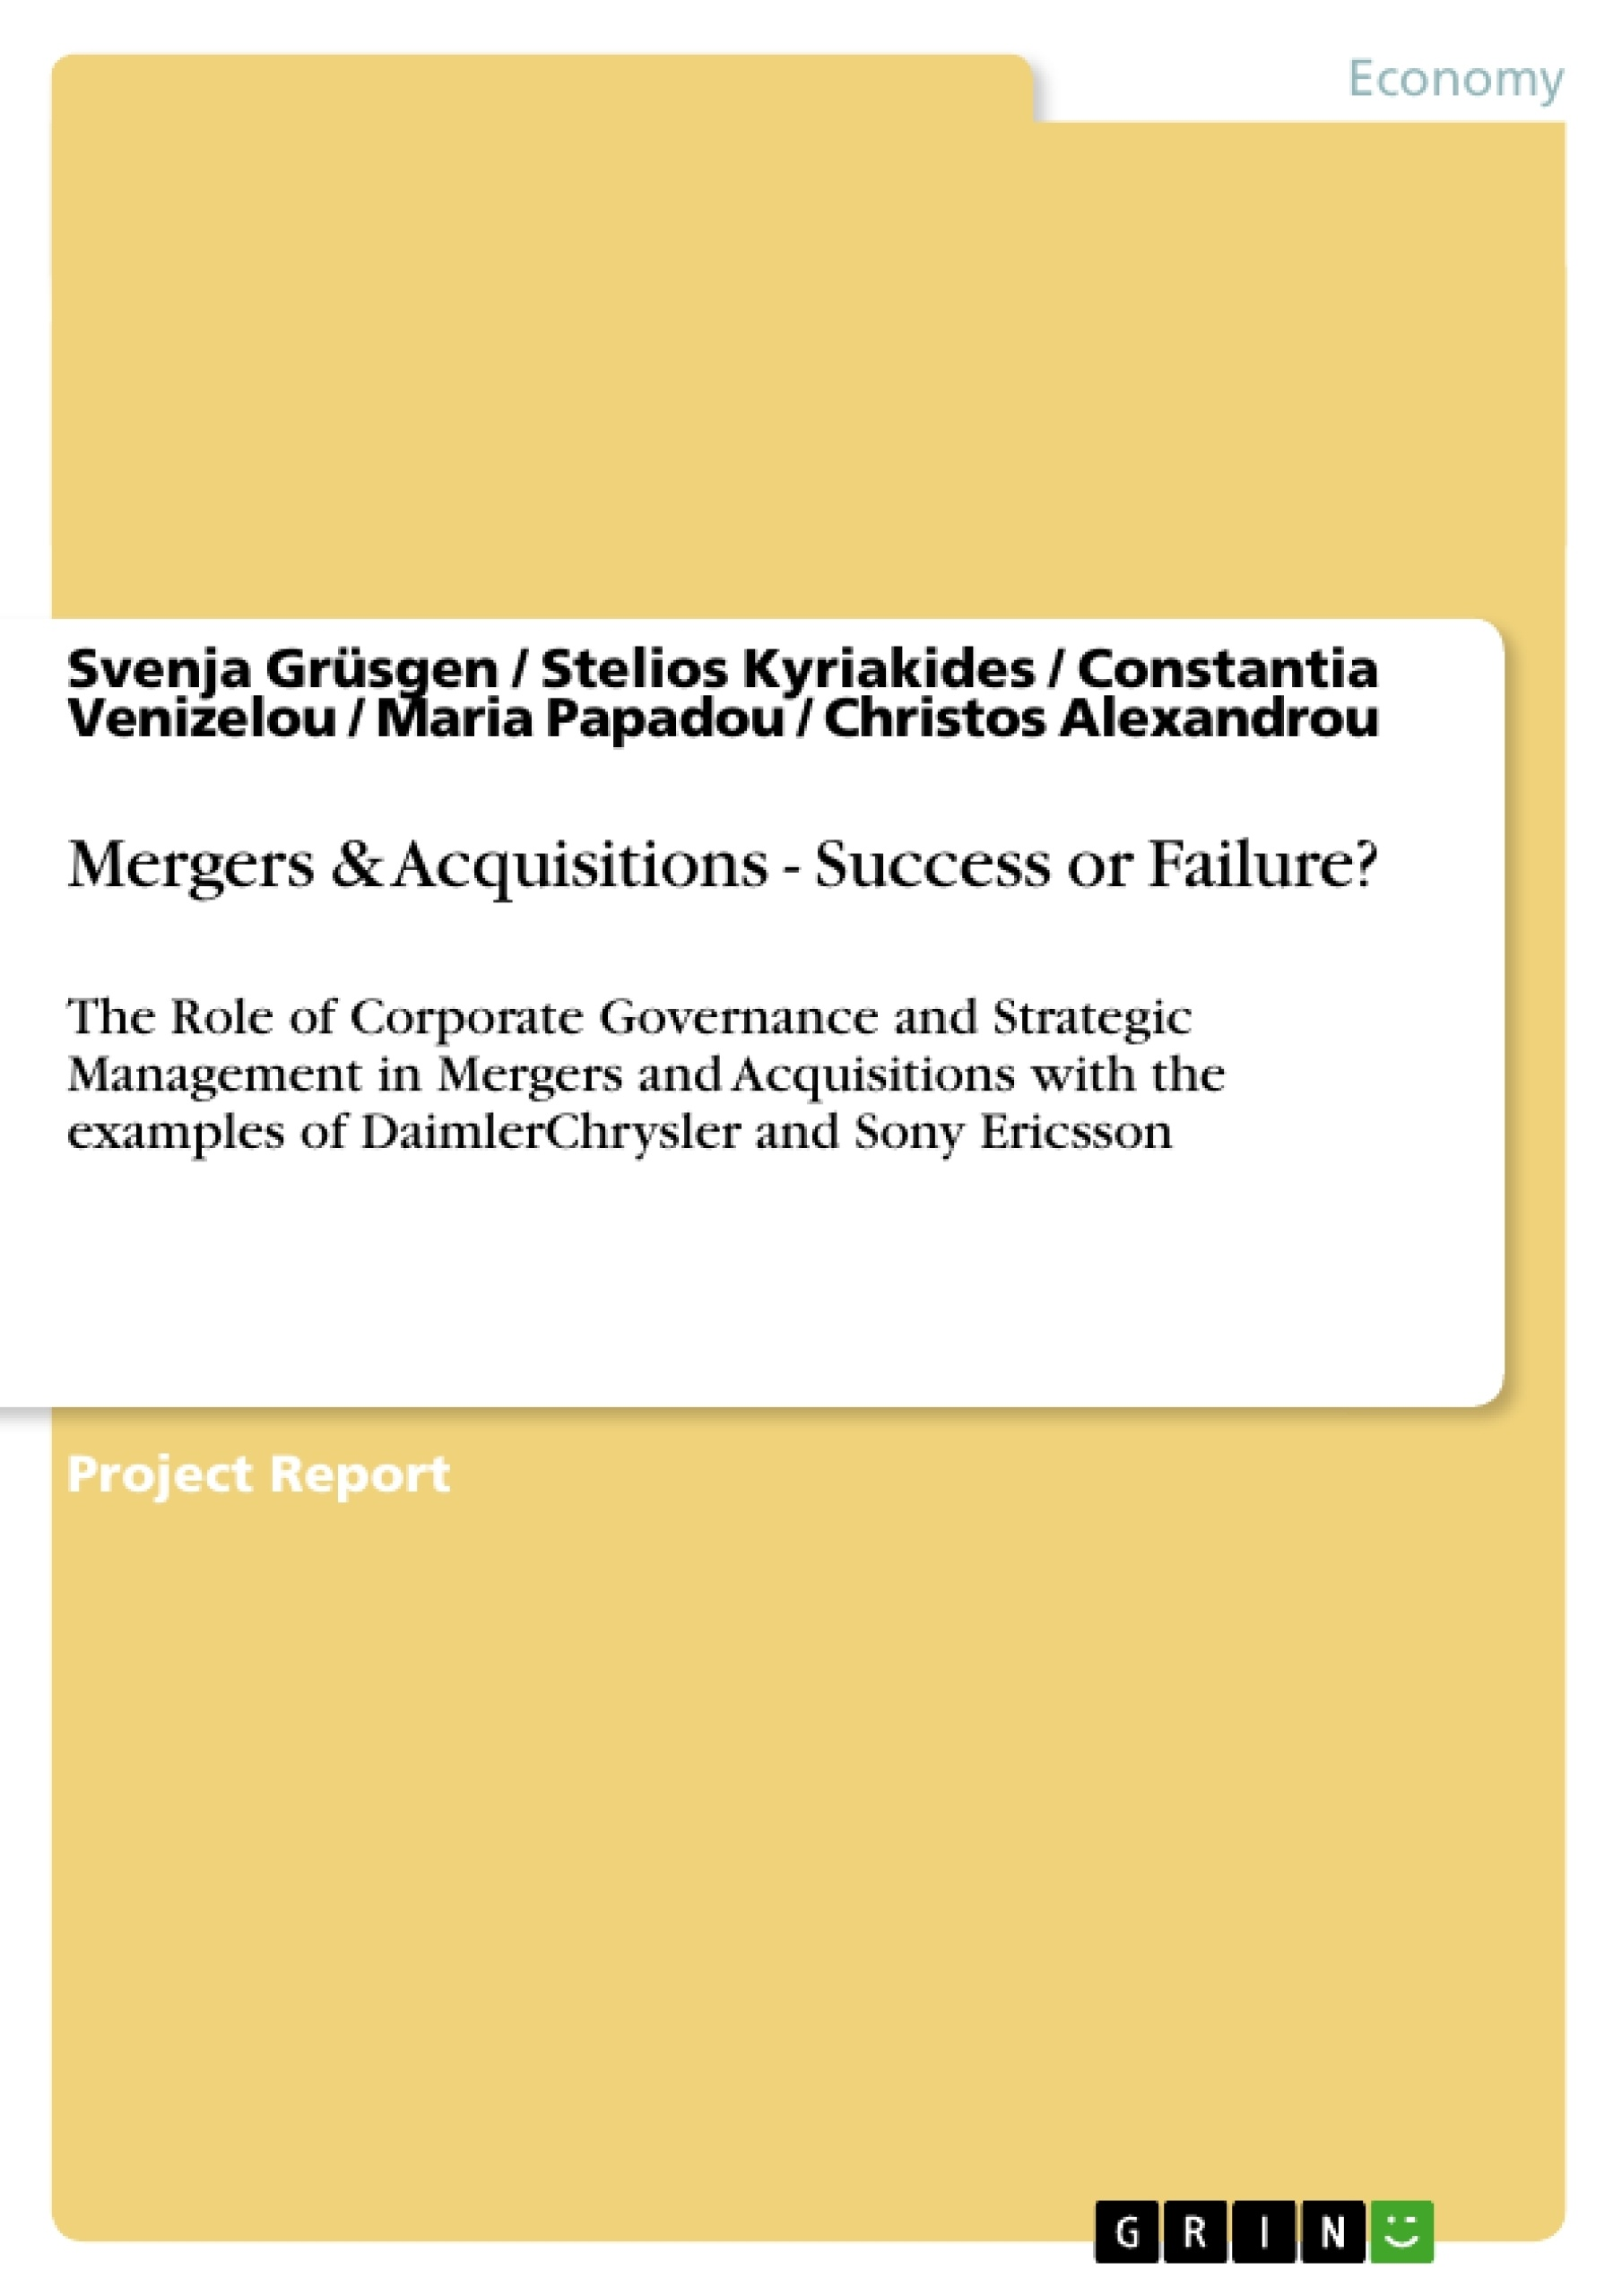 GRIN - Mergers & Acquisitions - Success or Failure?